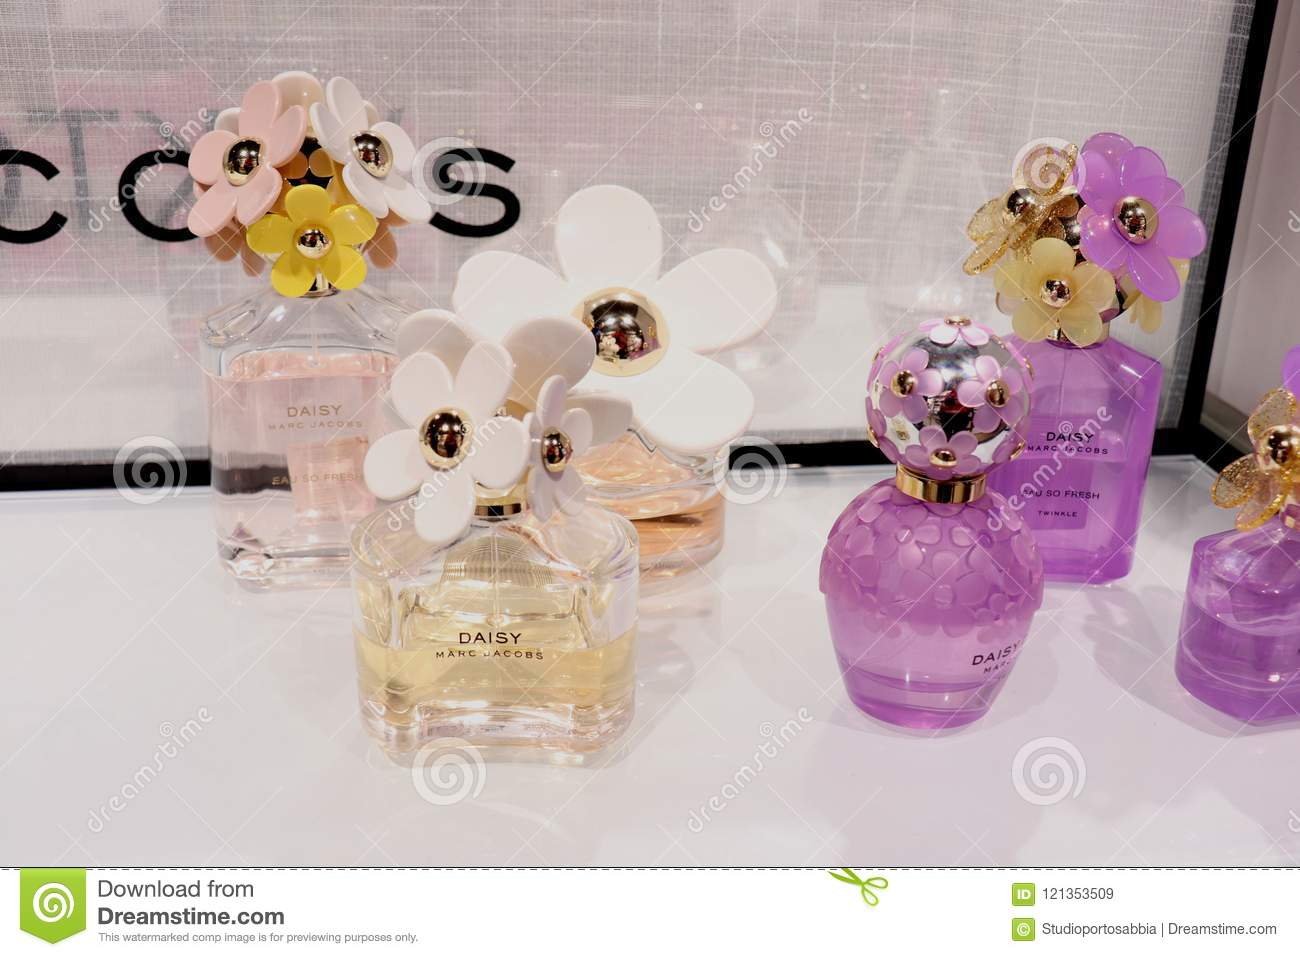 Haarlem the netherlands july 8th 2018 marc jacobs daisy perfumes haarlem the netherlands july 8th 2018 marc jacobs daisy perfumes izmirmasajfo